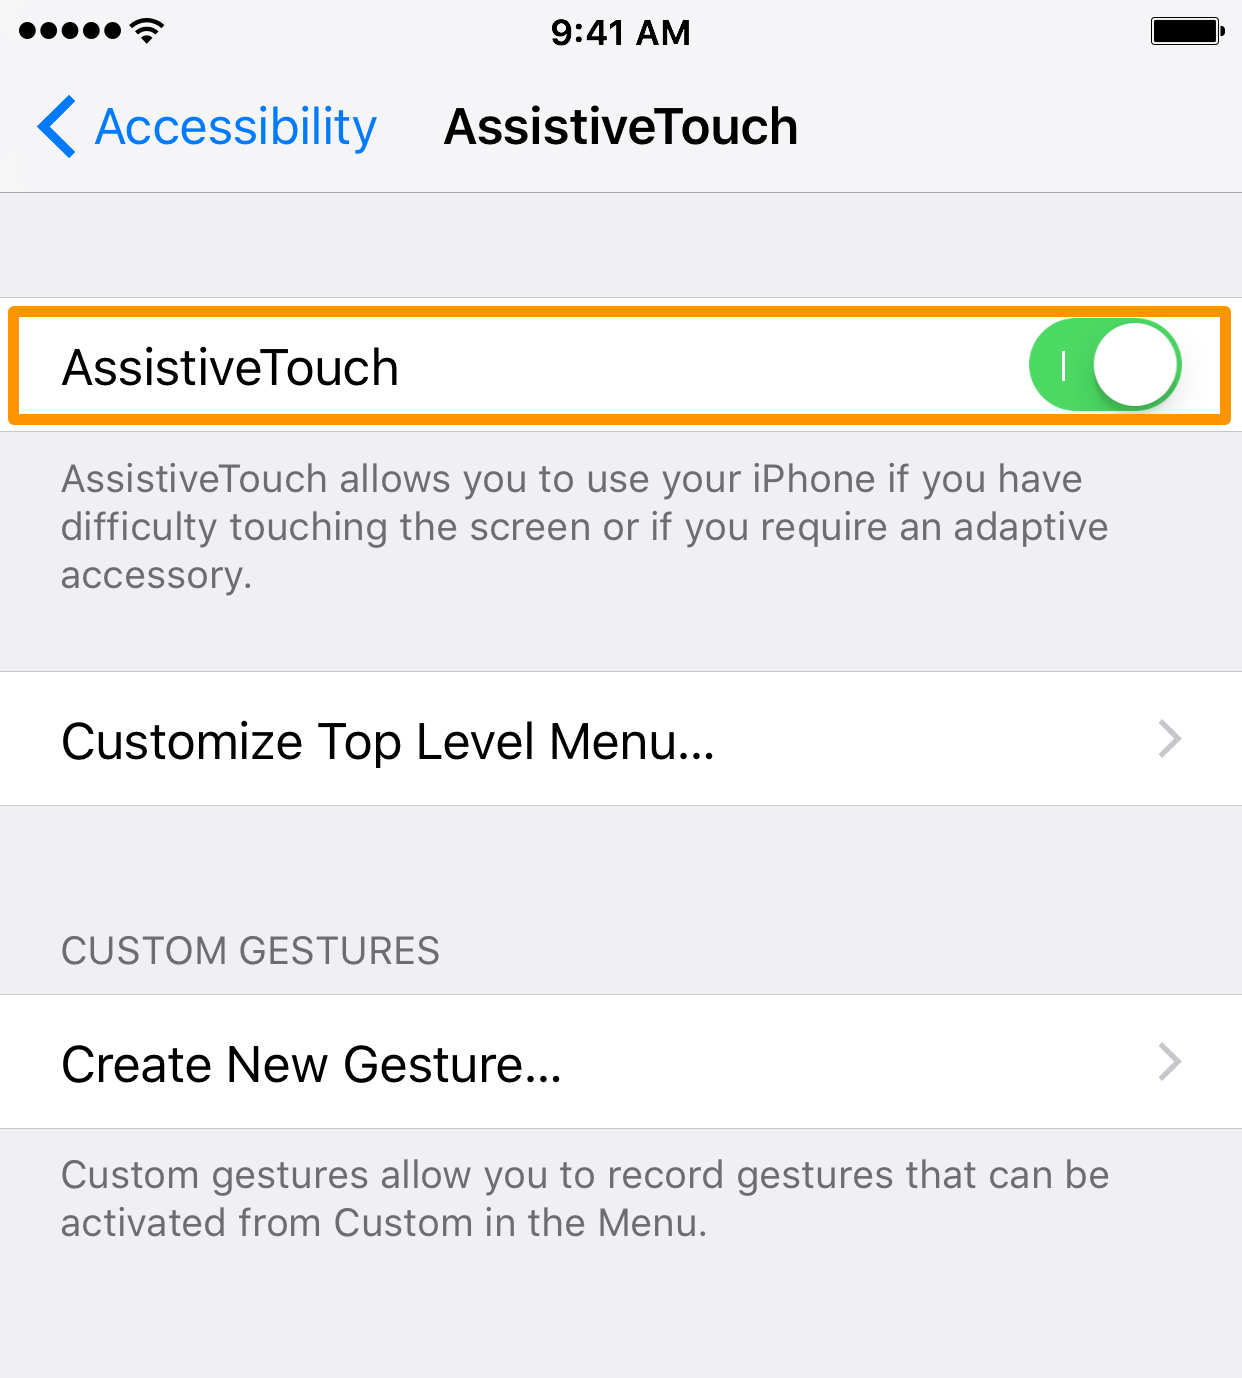 AssistiveTouch Toggle Switch